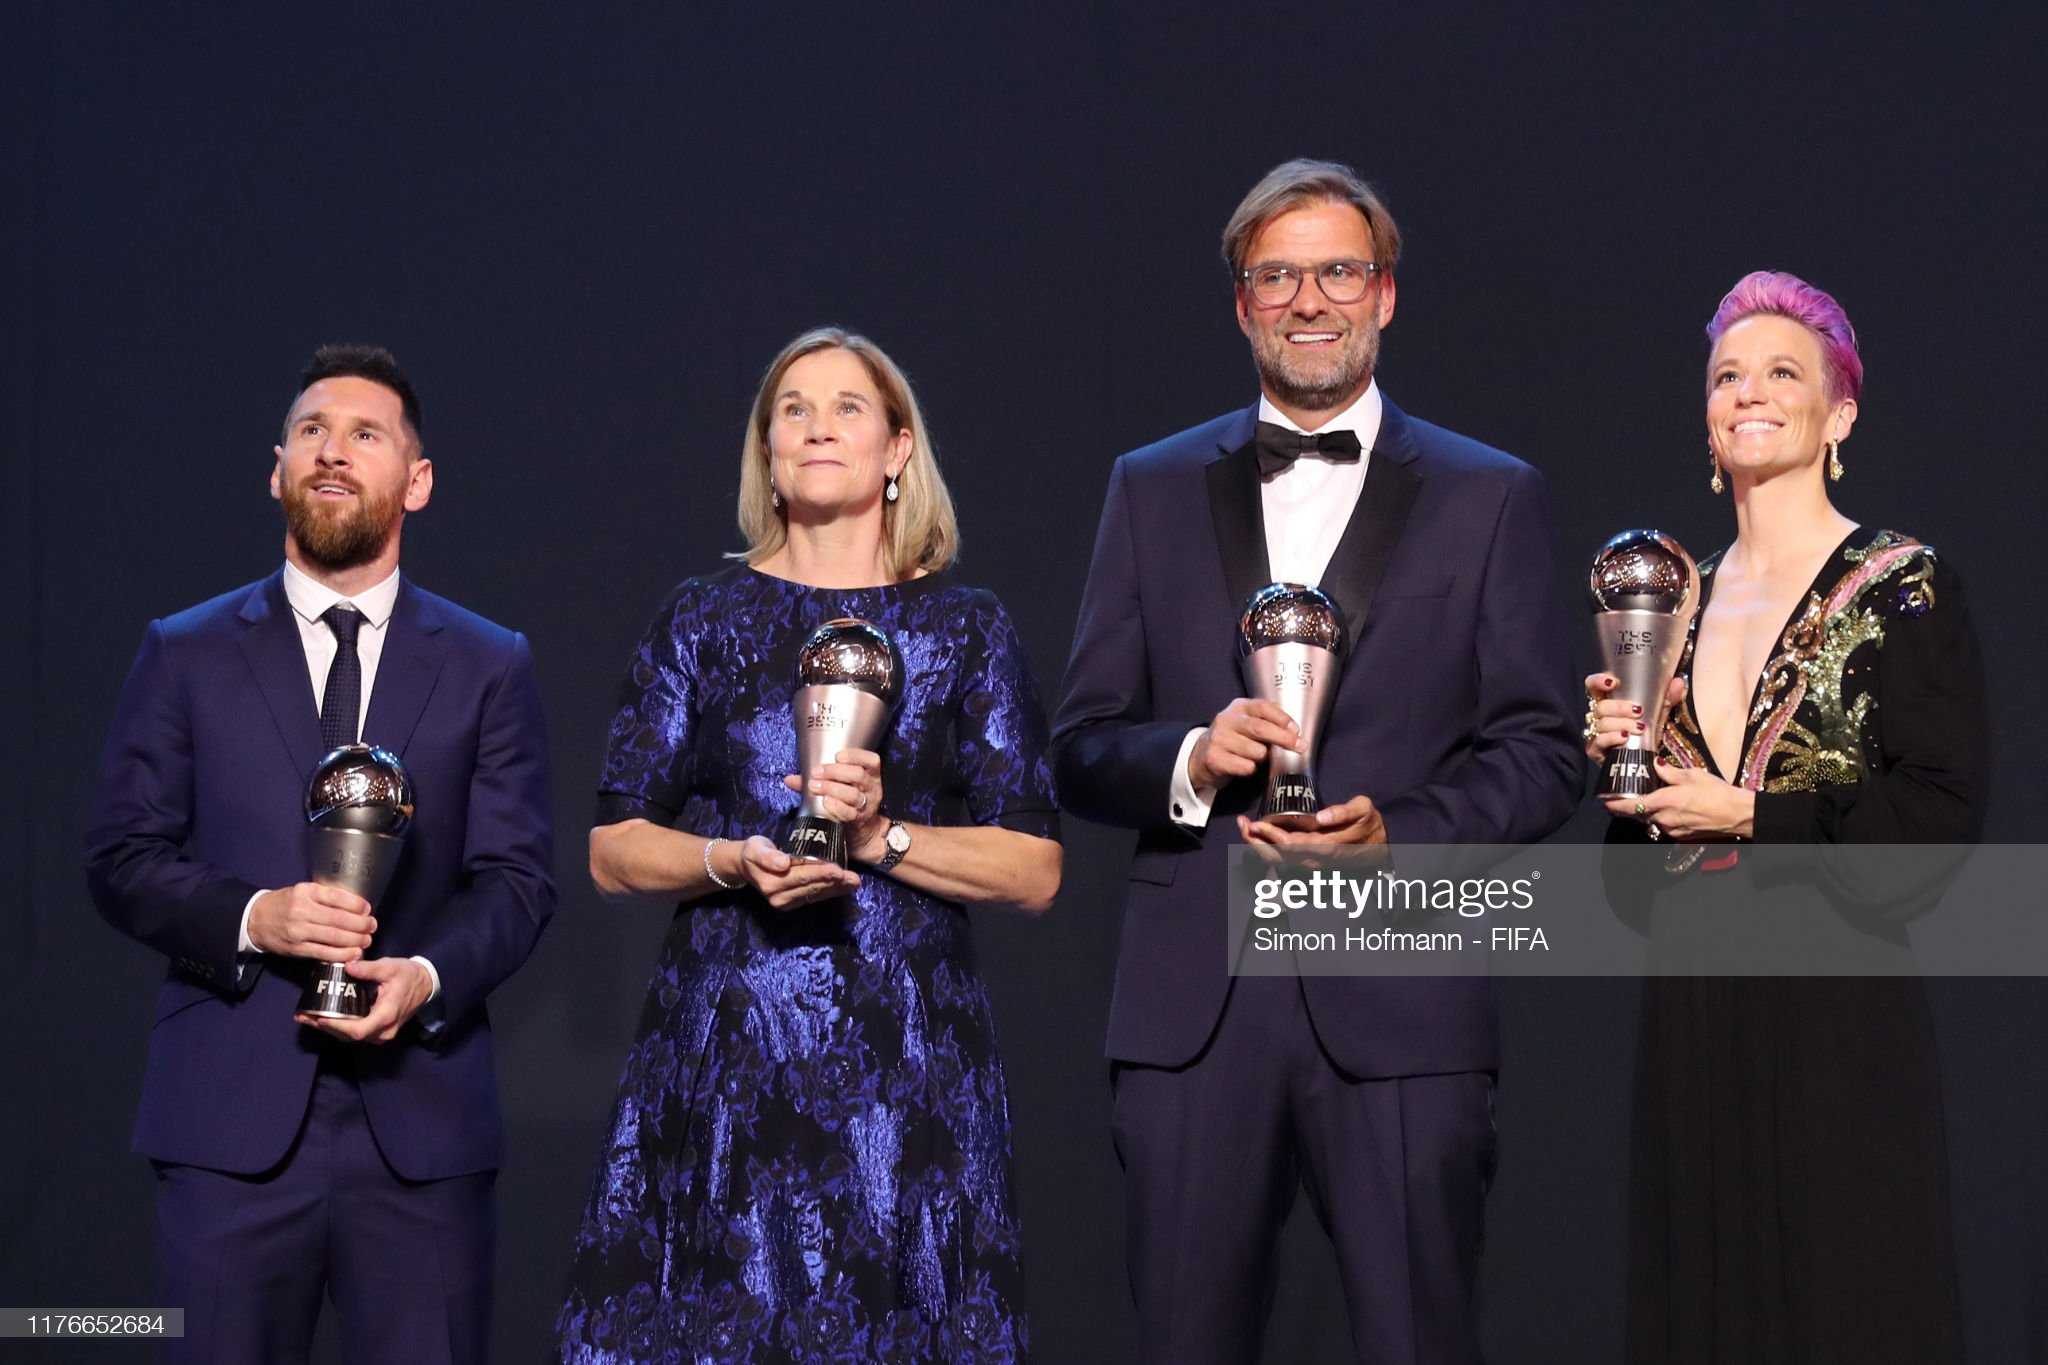 The Best FIFA Football Awards 2019 The-best-fifa-mens-player-award-winnrer-lionel-messi-of-fc-barcelona-picture-id1176652684?s=2048x2048